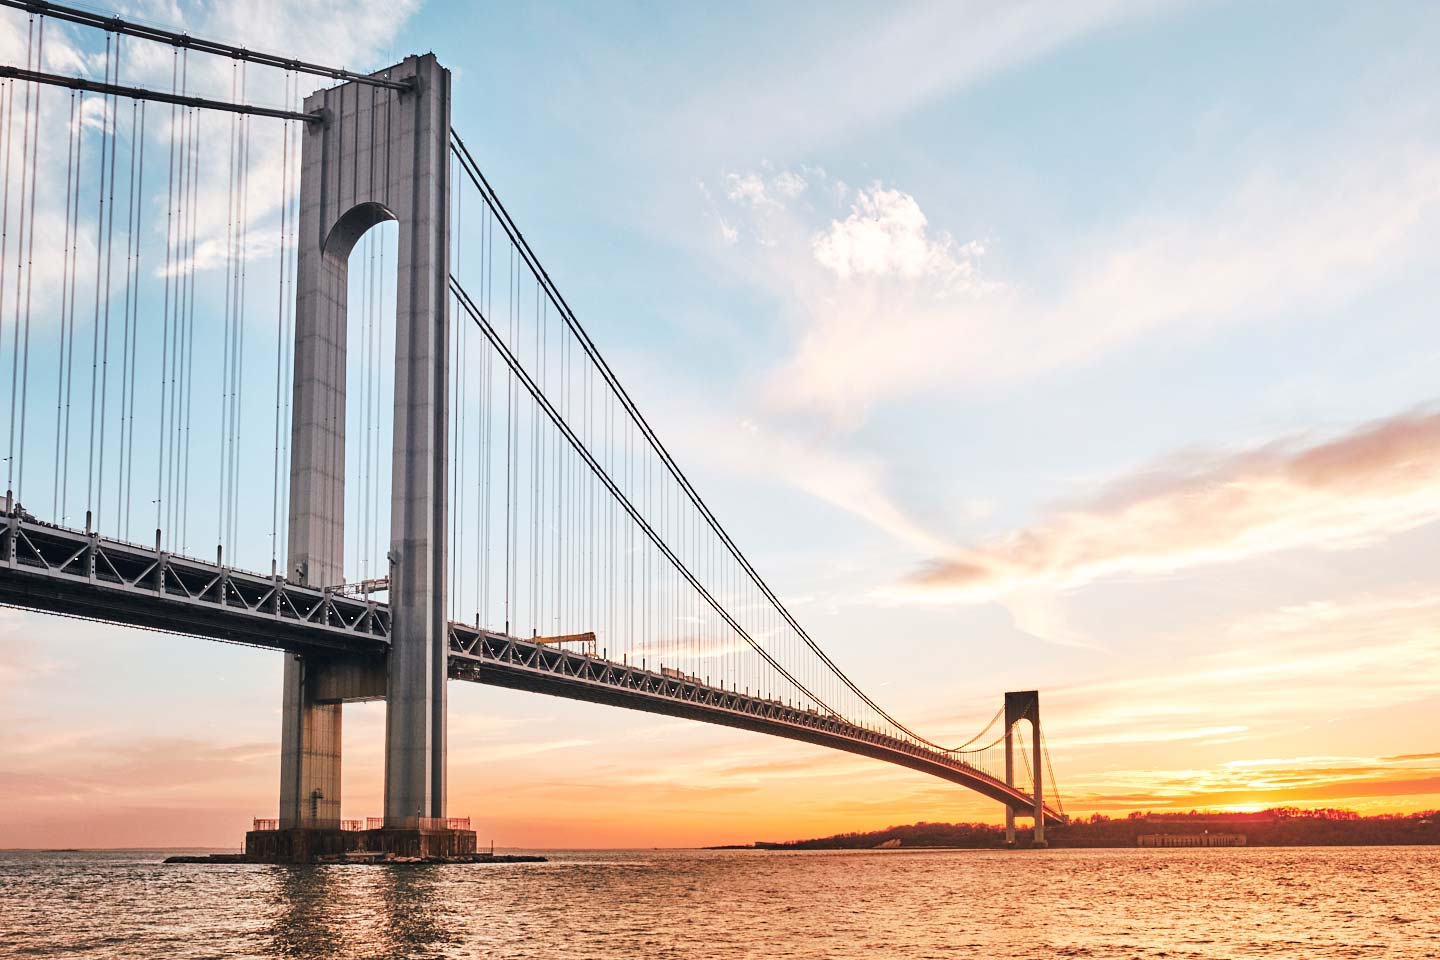 New York Verrazano Bridge Travel Photographer Marcus Lewis web-40-percent